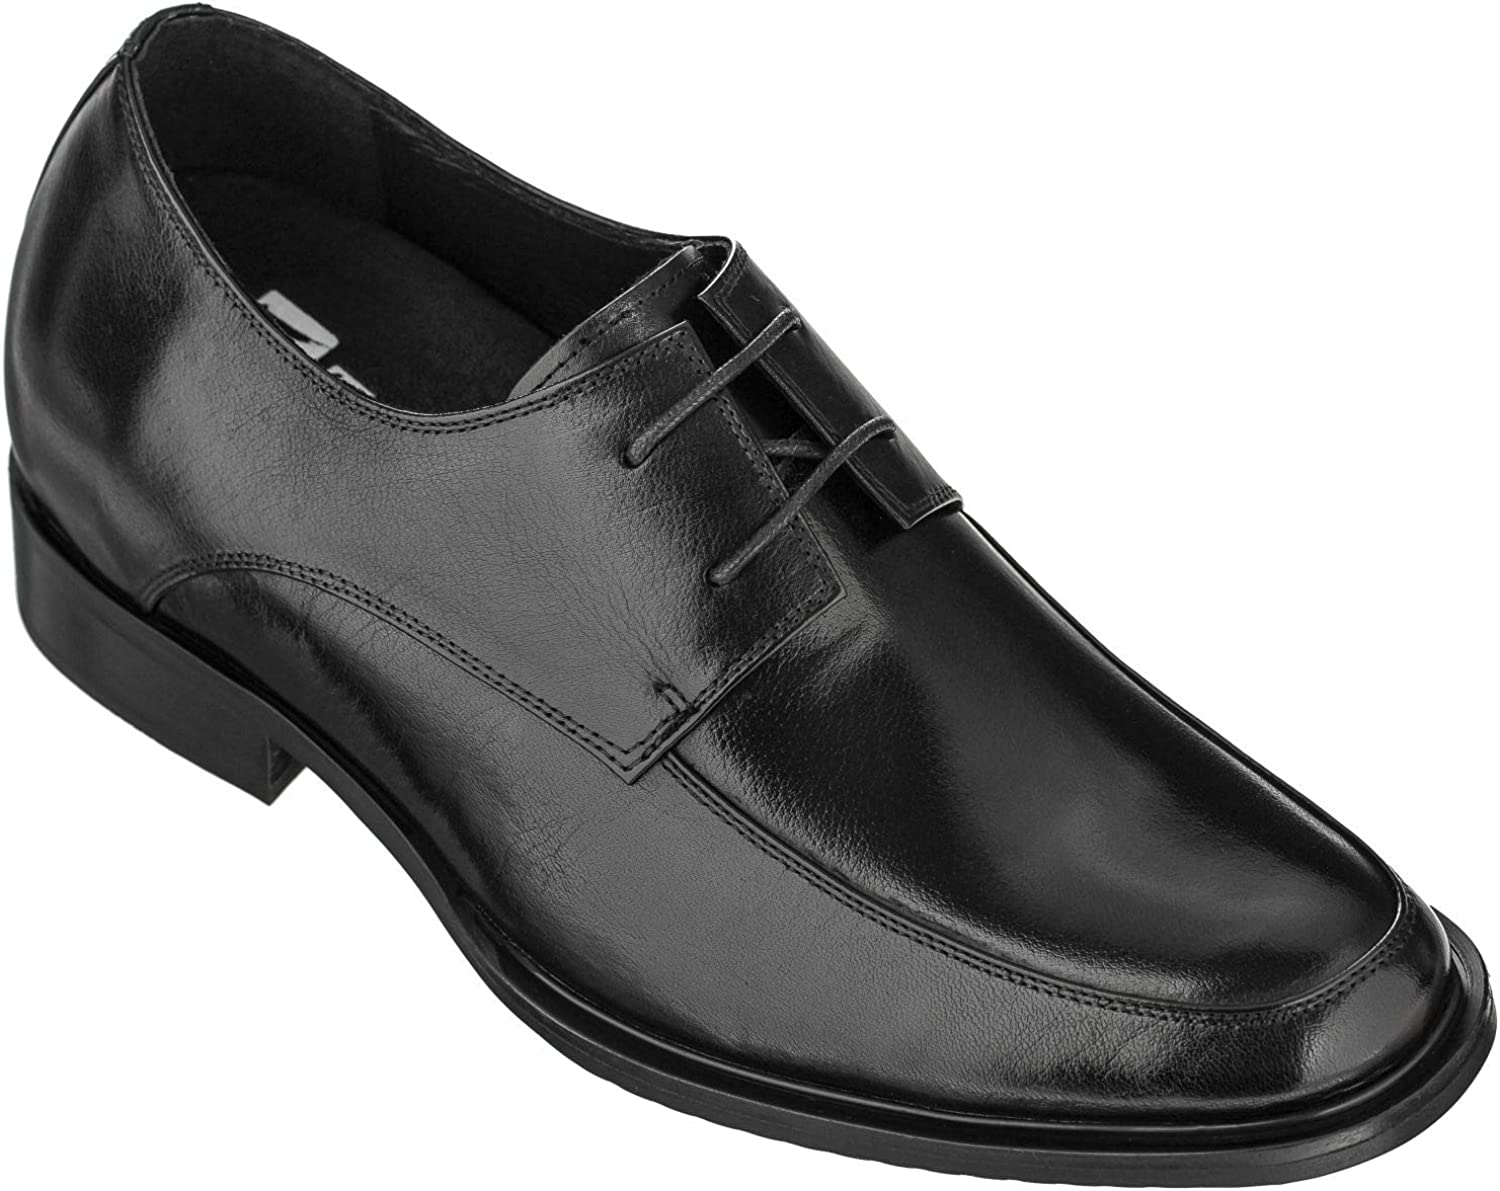 TOTO Men's Invisible Height Increasing Elevator Dress Shoes - Black Premium Leather Lace-up Formal Oxfords - 2.8 Inches Taller - T1501